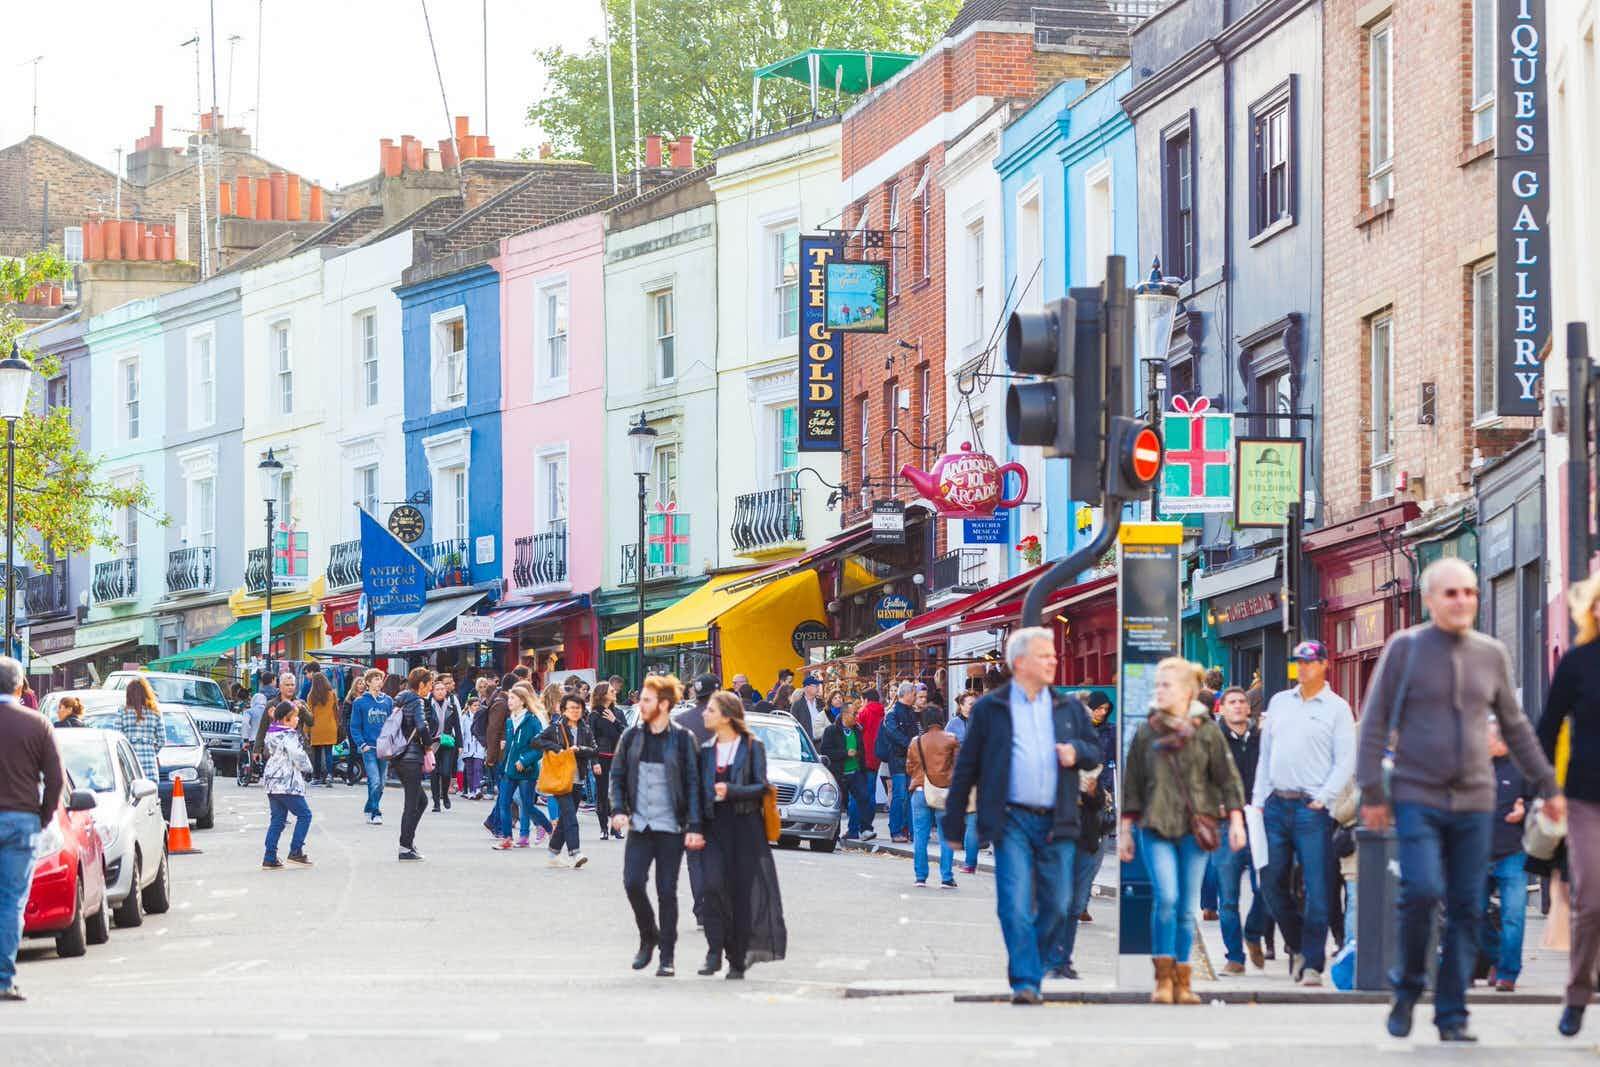 Strolling down Portobello Rd © William Perugini / Shutterstock